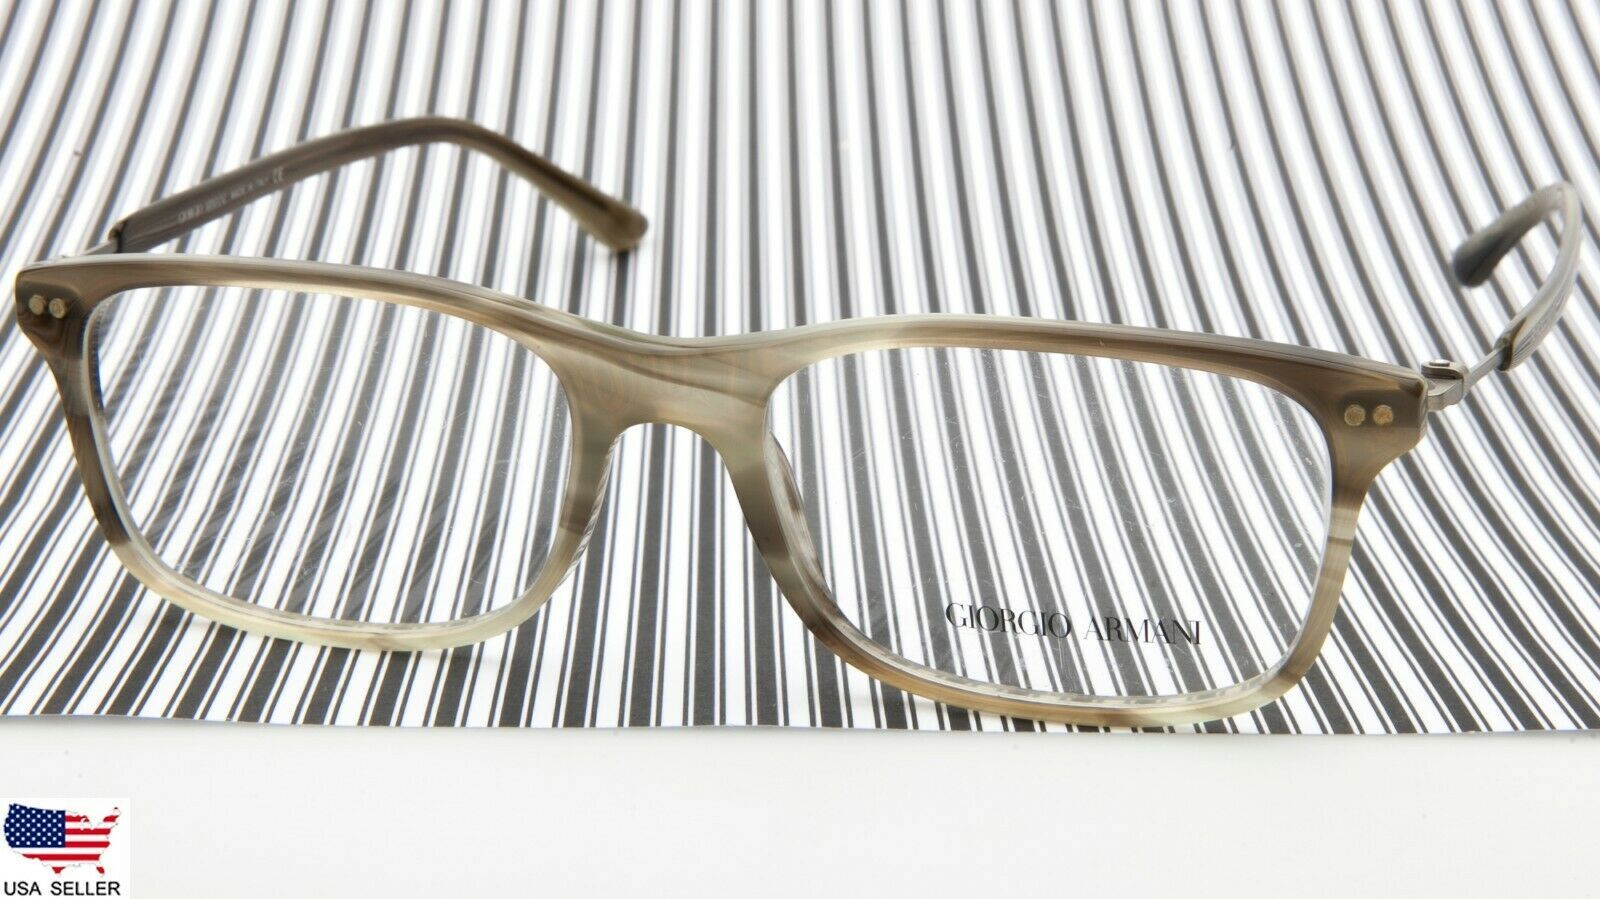 Primary image for NEW GIORGIO ARMANI AR 7024 5183 STRIPED OLIVE EYEGLASSES FRAME 53-17-140mm Italy